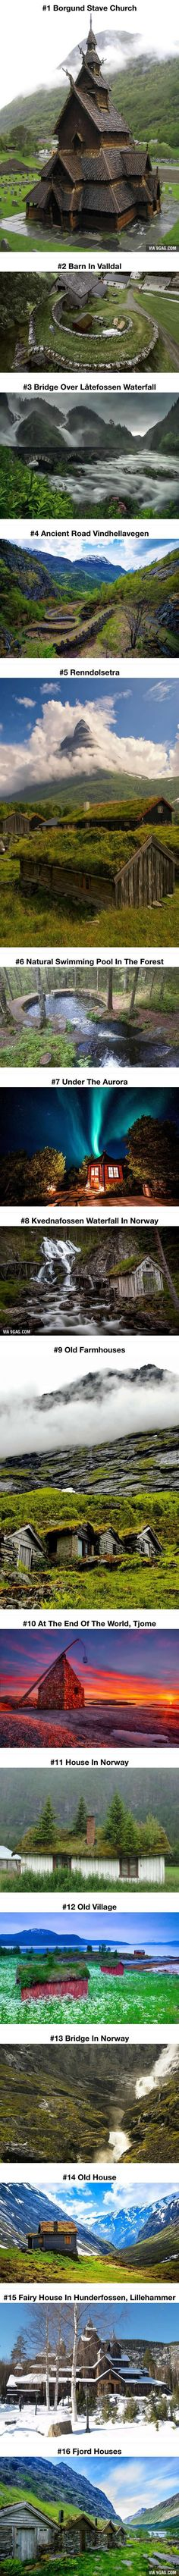 Beautiful Fairy Tale Architecture From Norway. These places seem so cool to go to